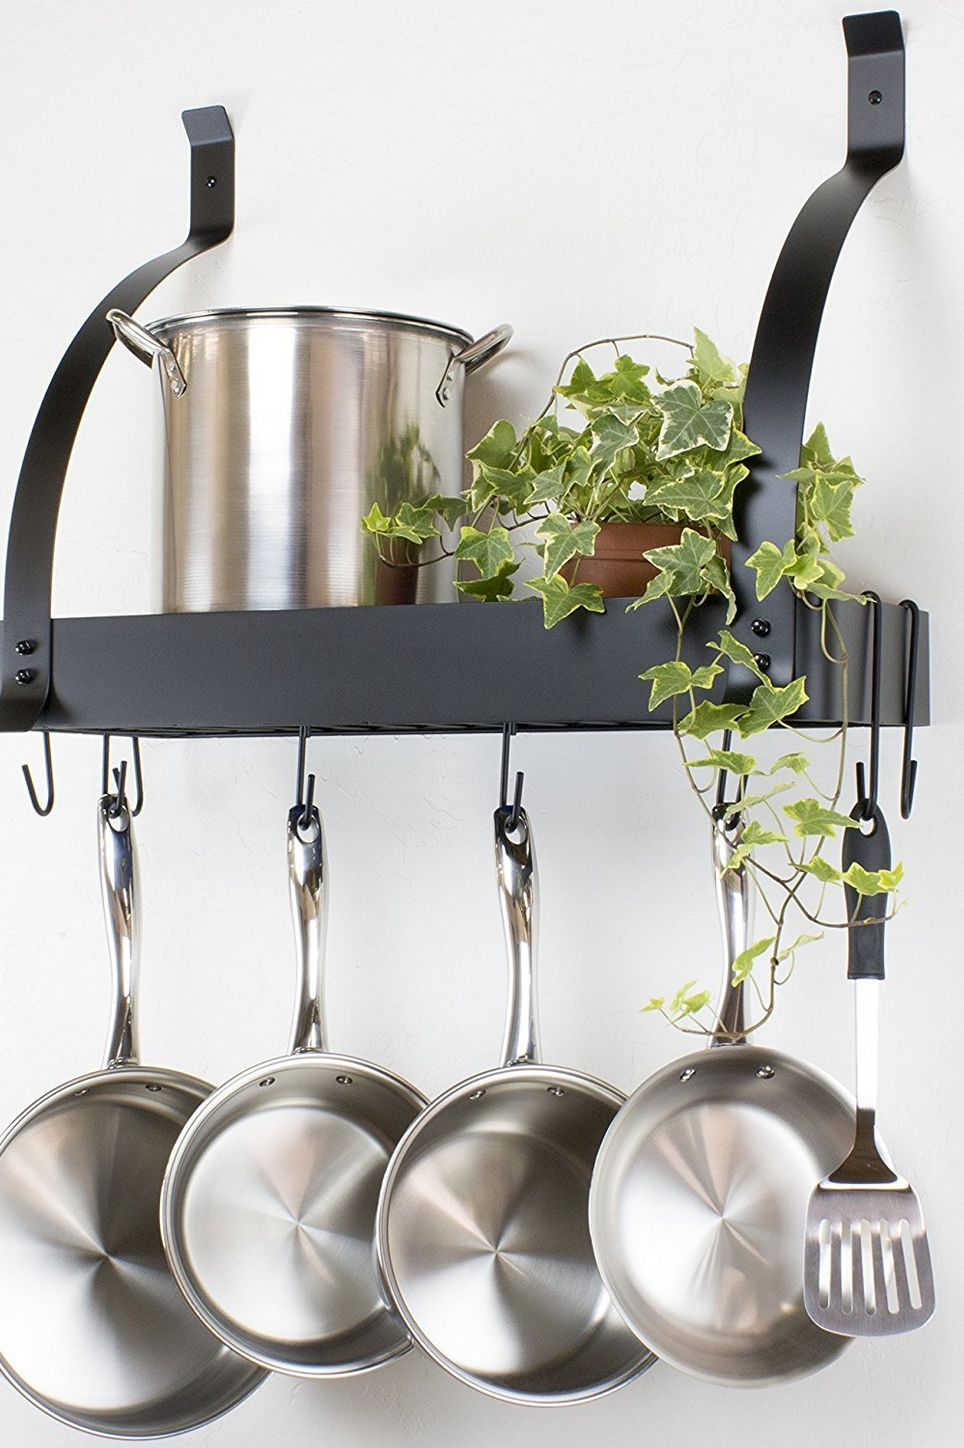 Contour Essentials Stainless Steel Wall Mounted Kitchen Pot Rack